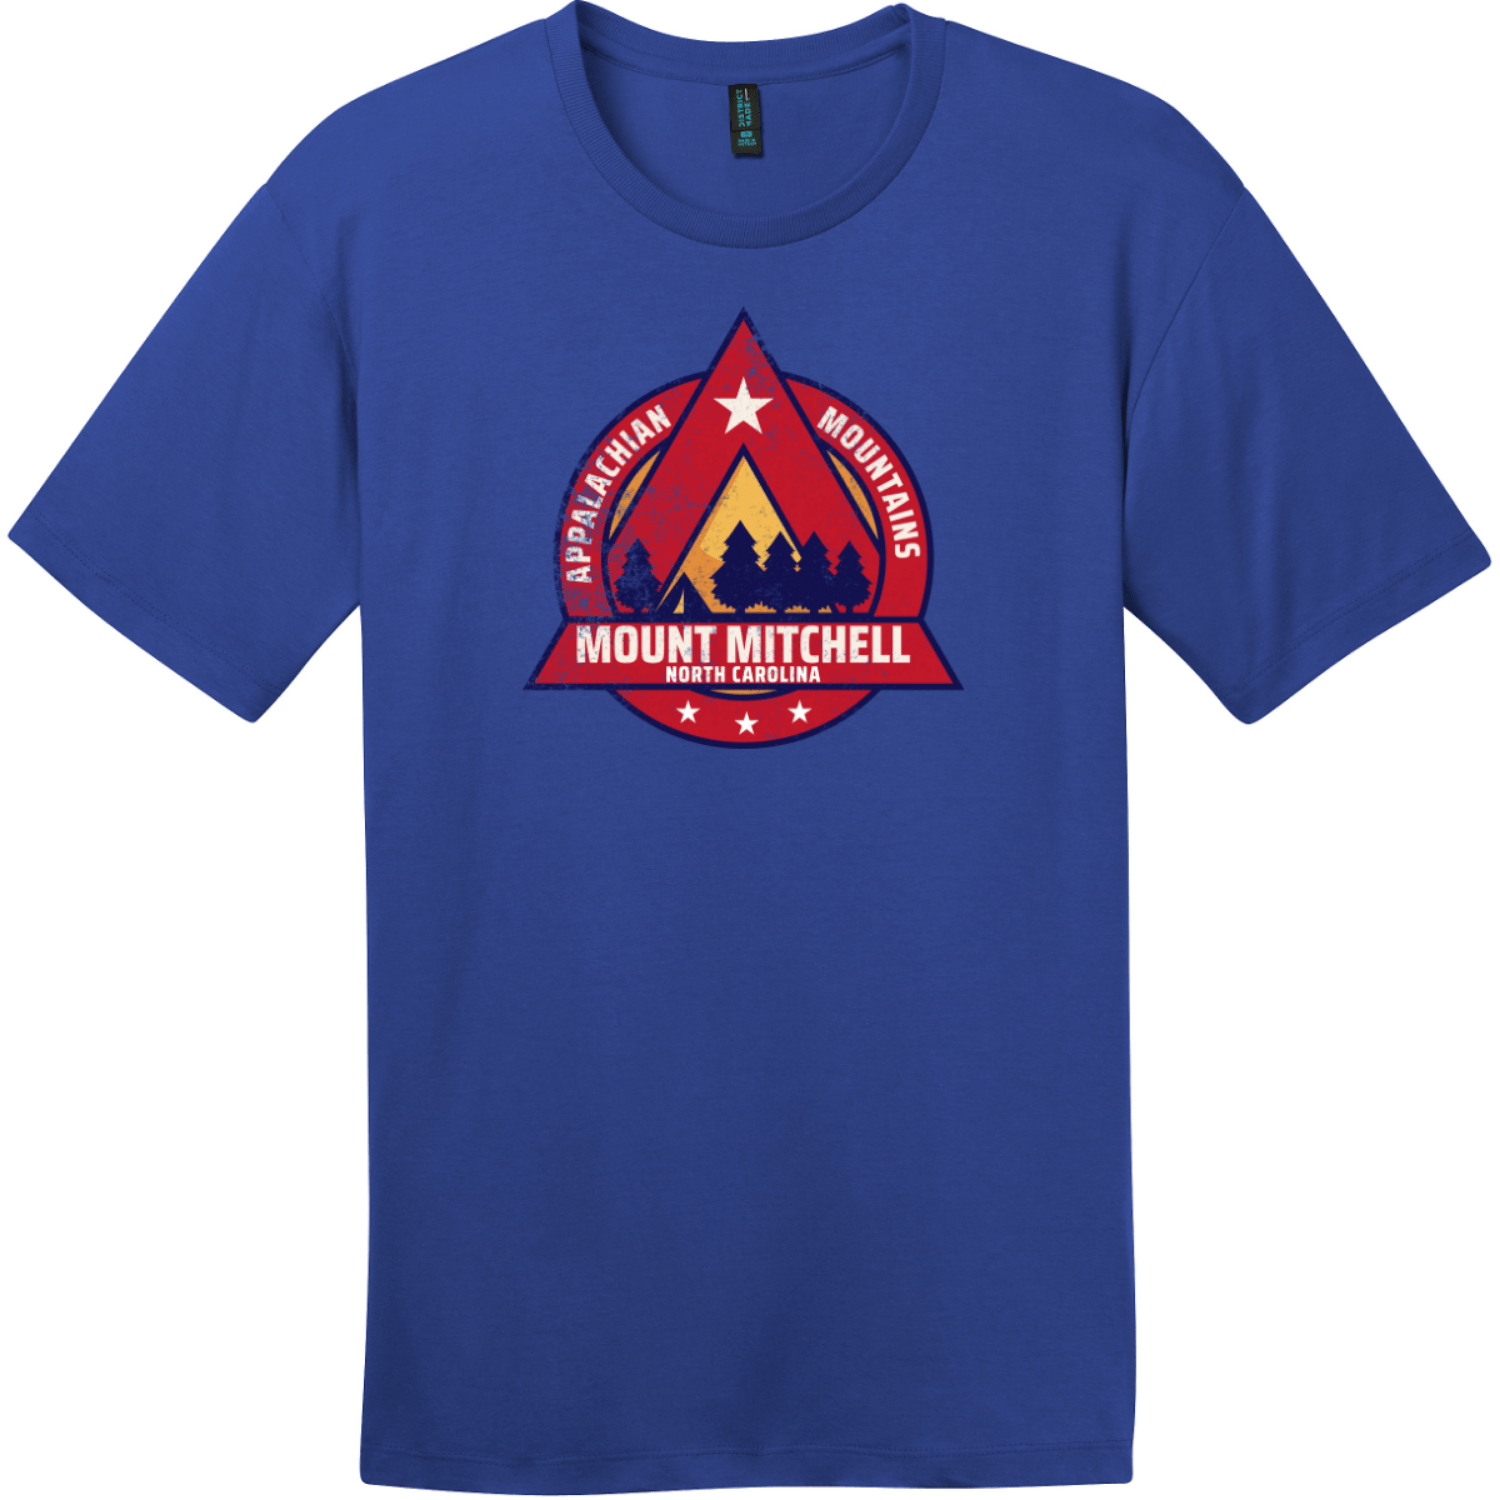 Mount Mitchell North Carolina Camping T-Shirt Deep Royal District Perfect Weight Tee DT104